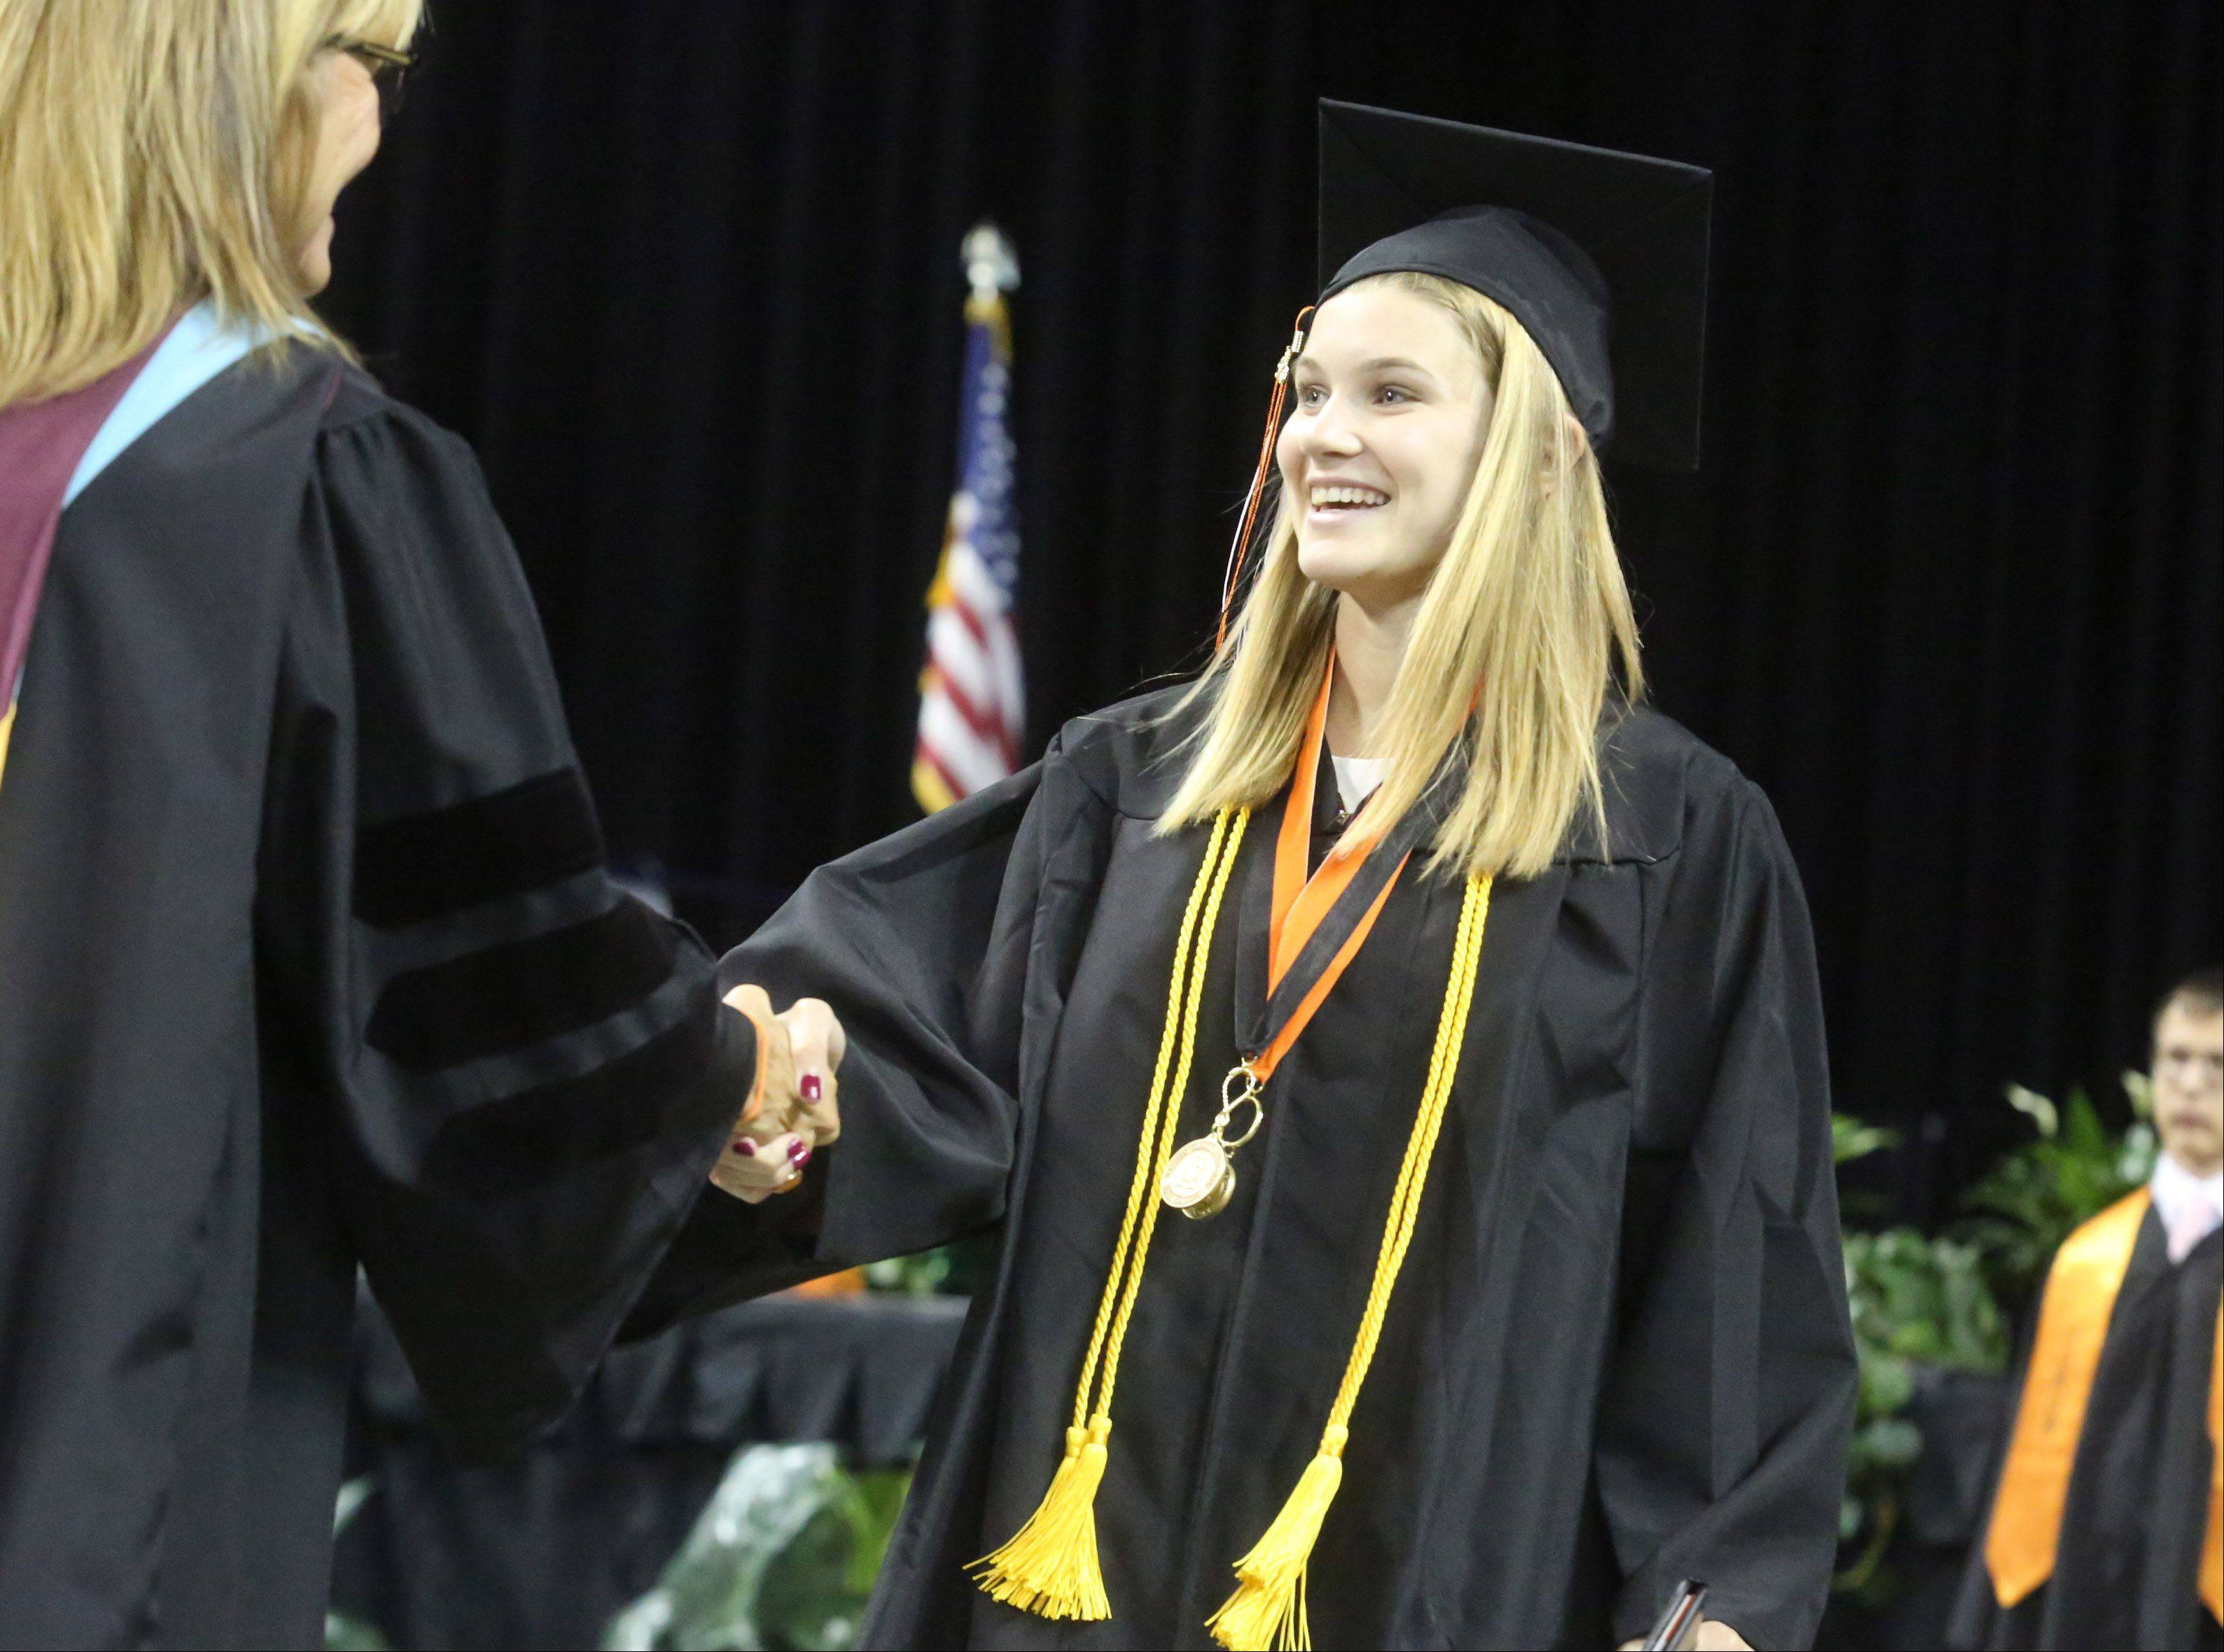 Images from the Libertyville High School graduation on Friday, June 7 at the Sears Centre in Hoffman Estates.